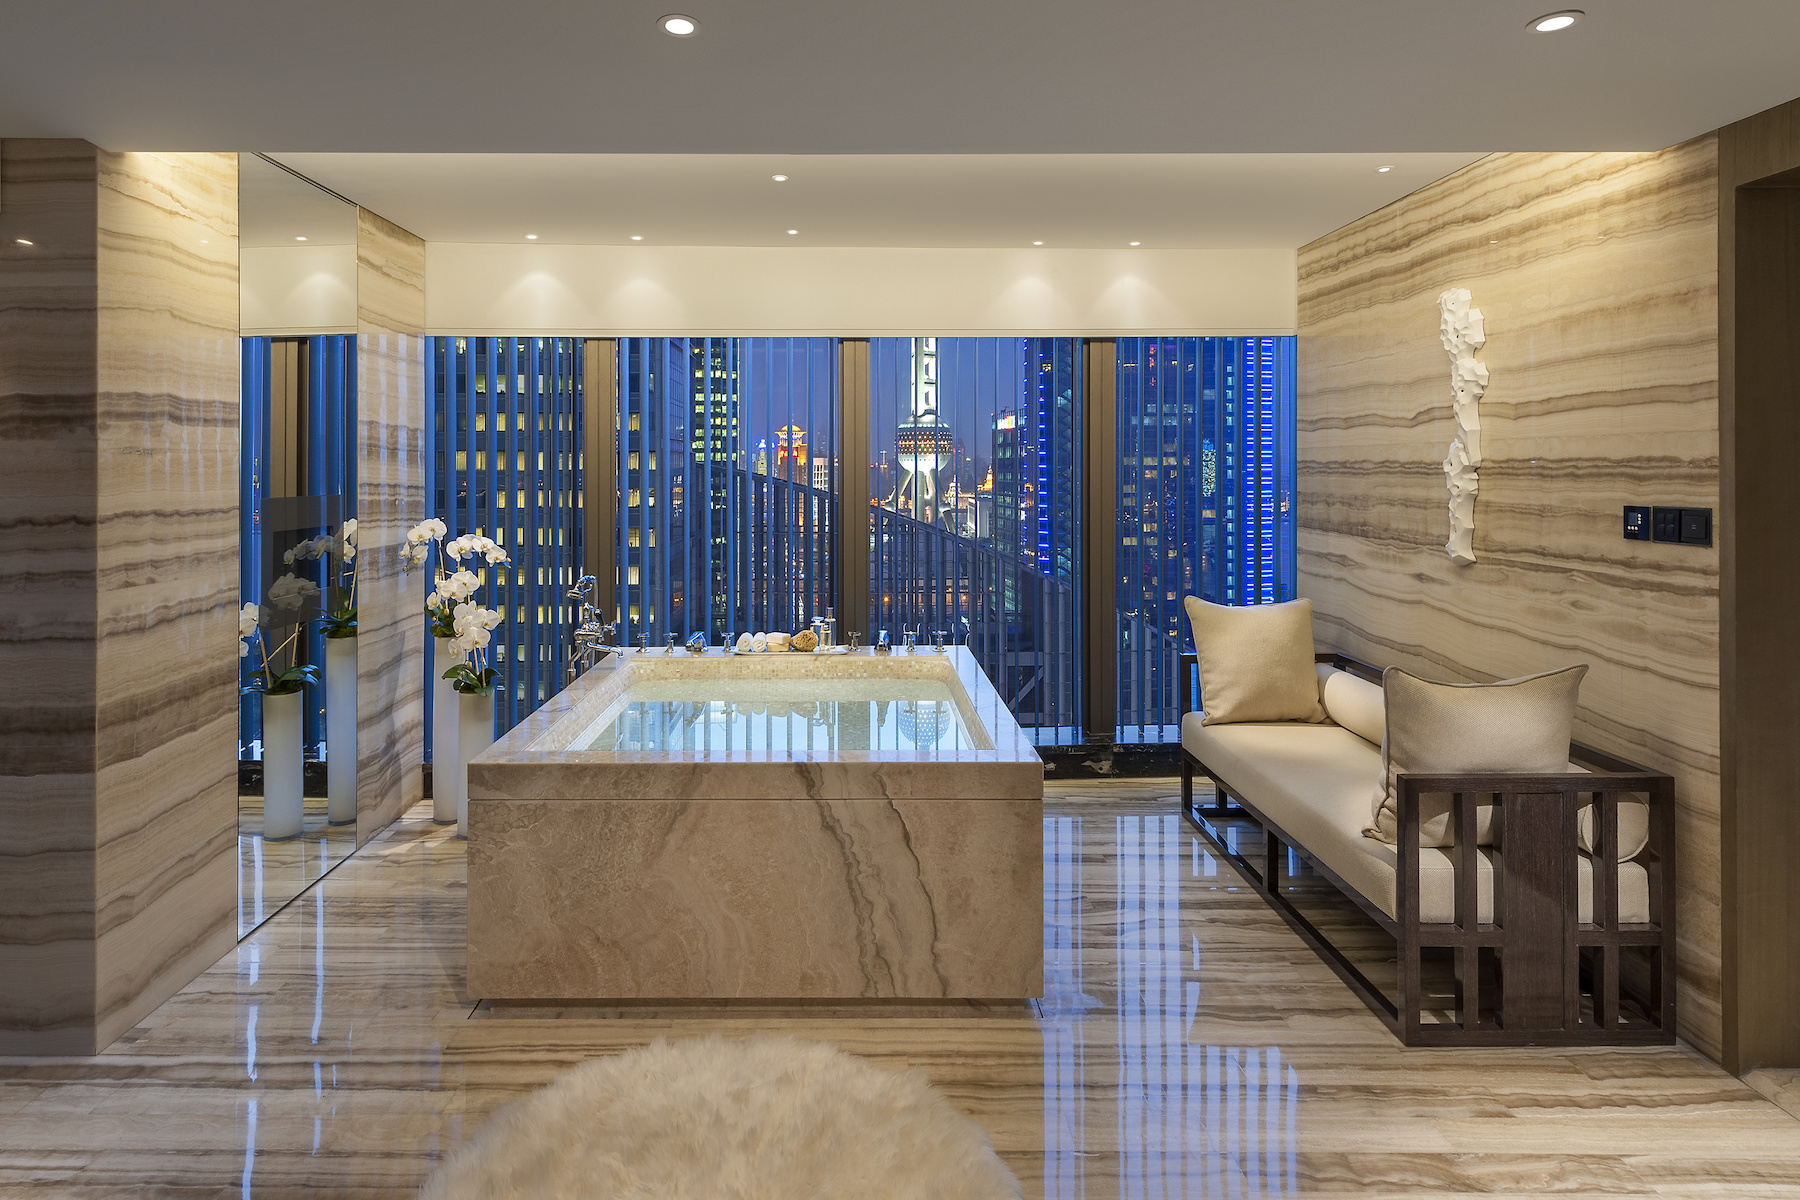 shanghai-suite-presidential-bathroom.jpg